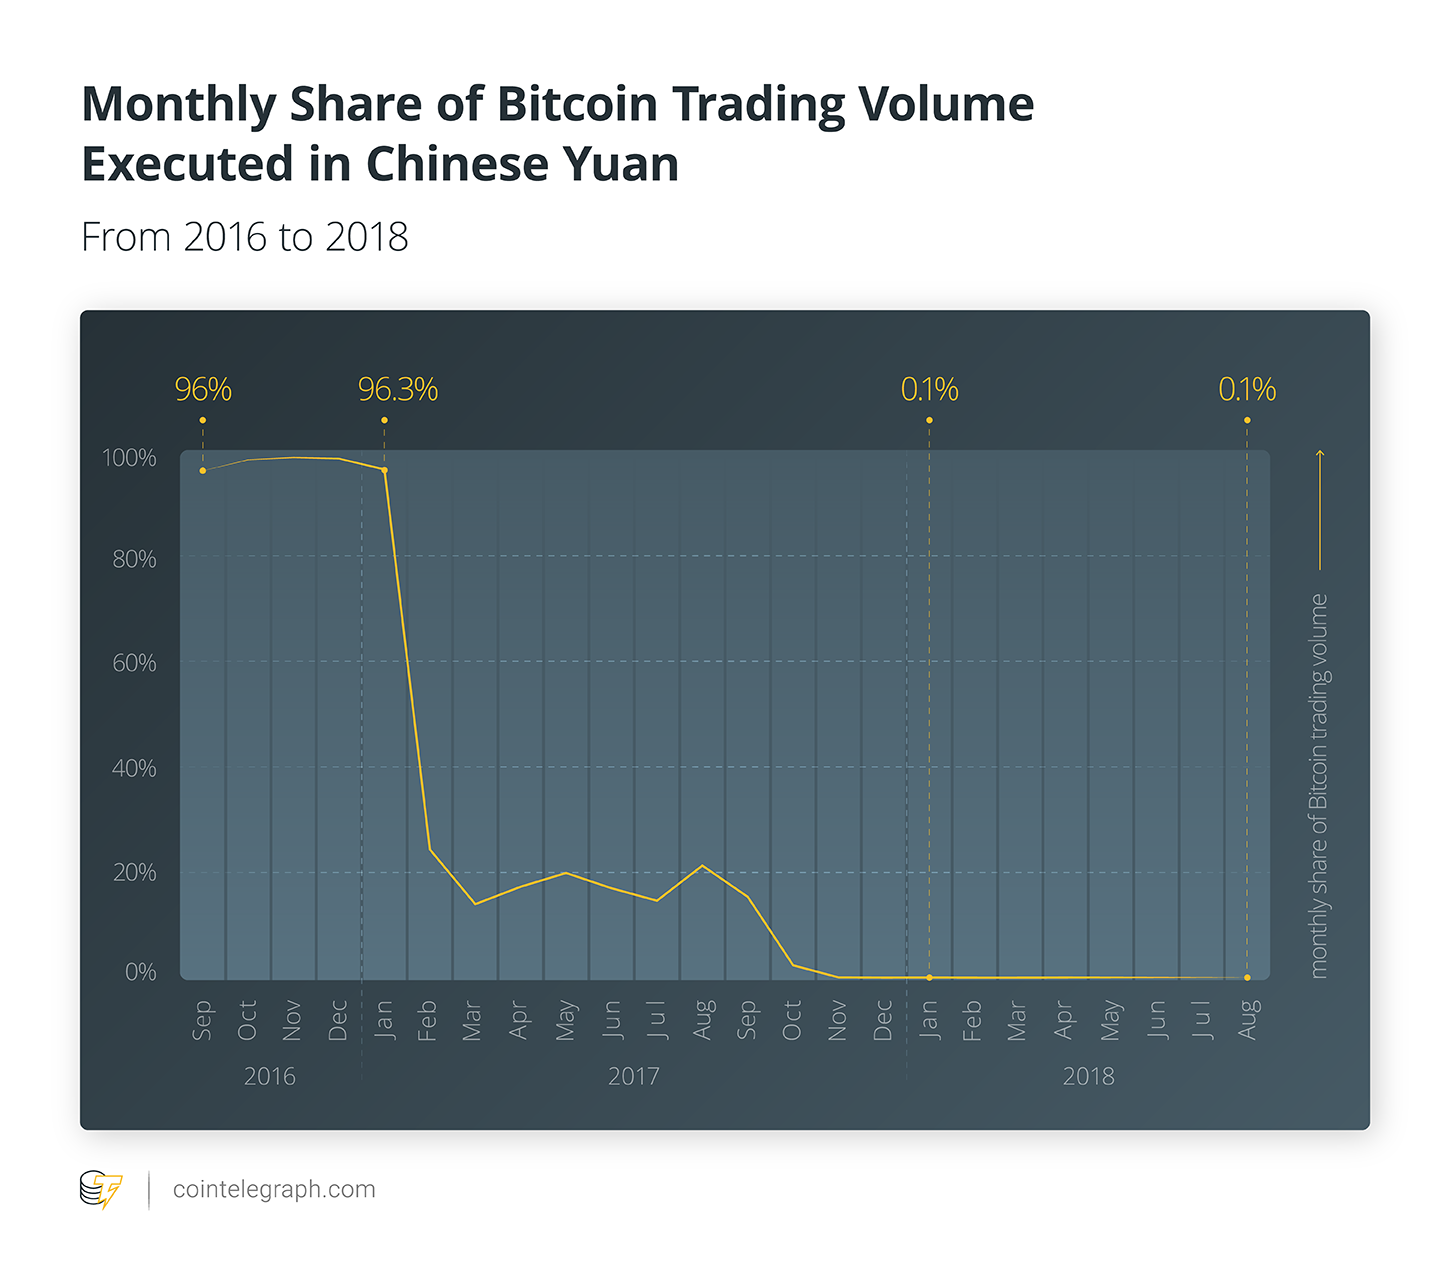 Monthly Share of Bitcoin Trading Volume Executed in Chinese Yuan